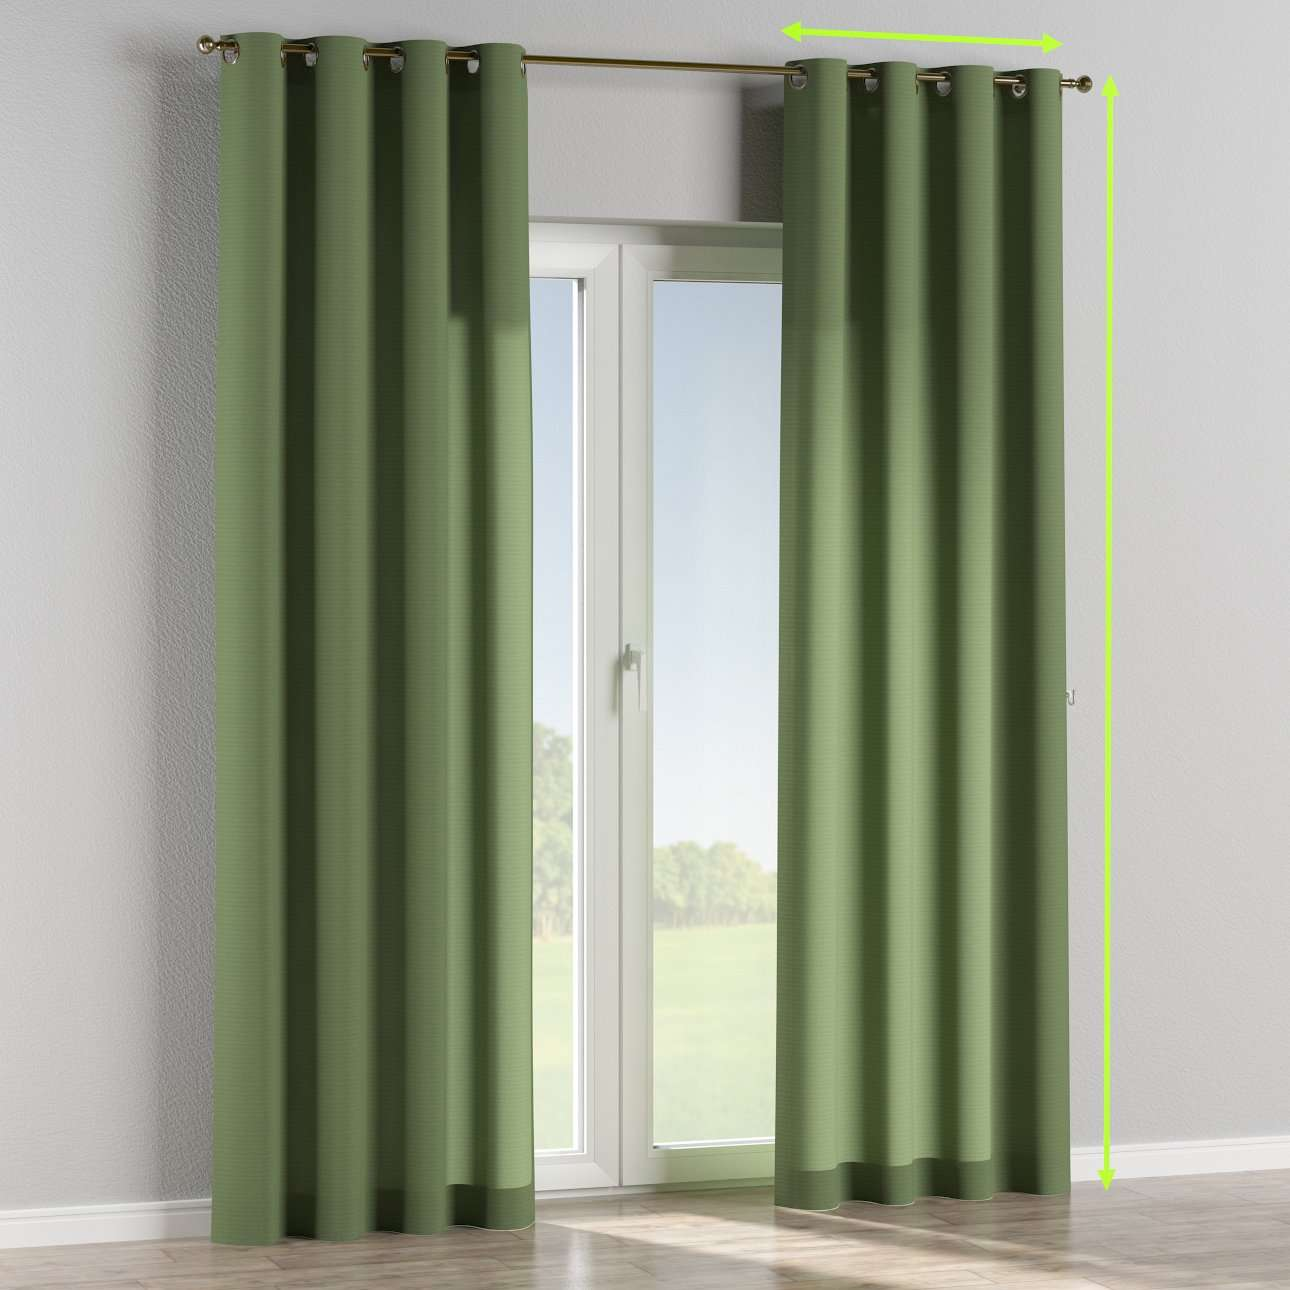 Eyelet curtains in collection Jupiter, fabric: 127-52